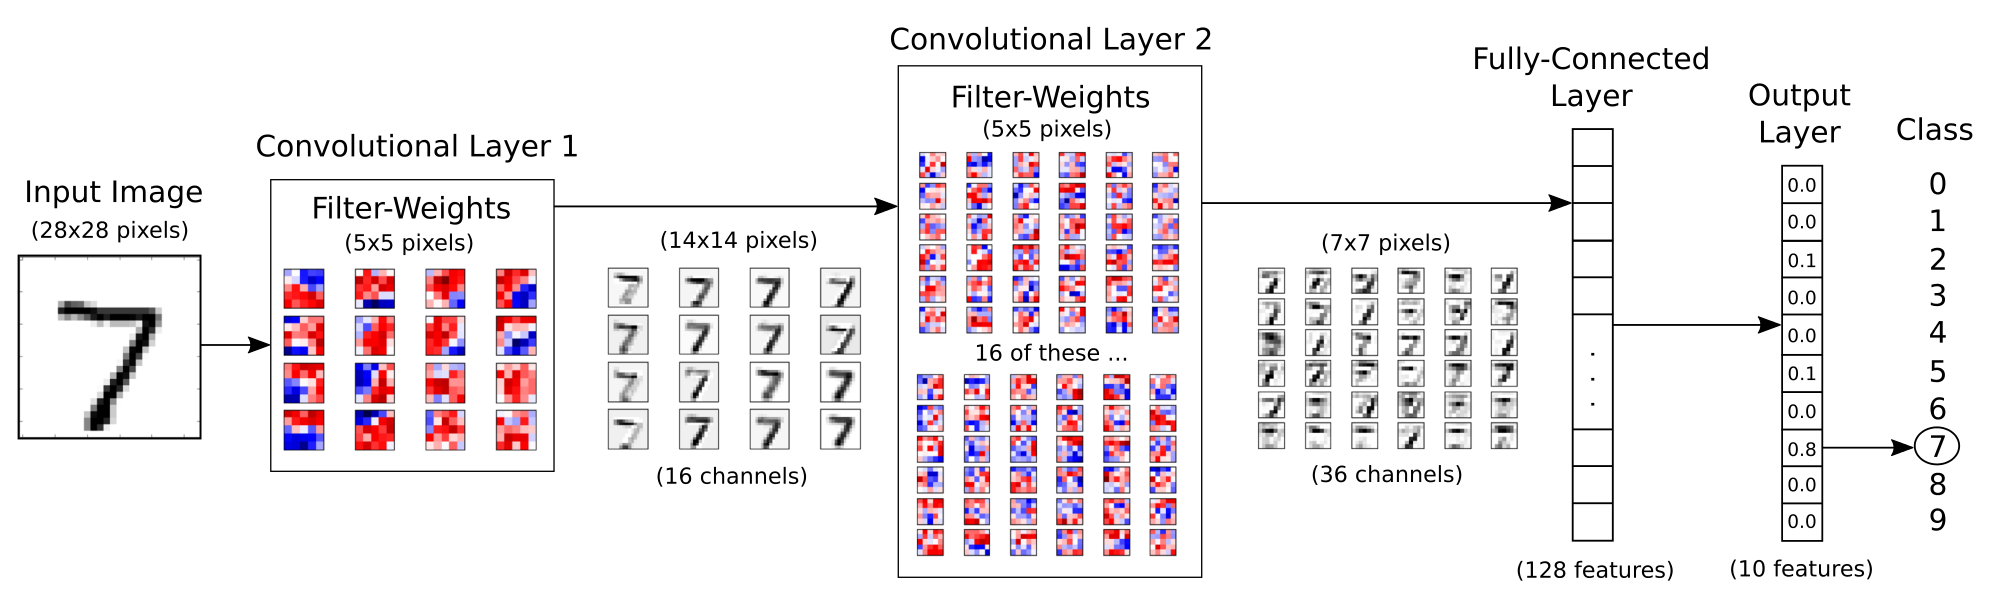 Convolutional Neural Network created to recognize handwritten digits using the MNIST dataset  Source:  Github